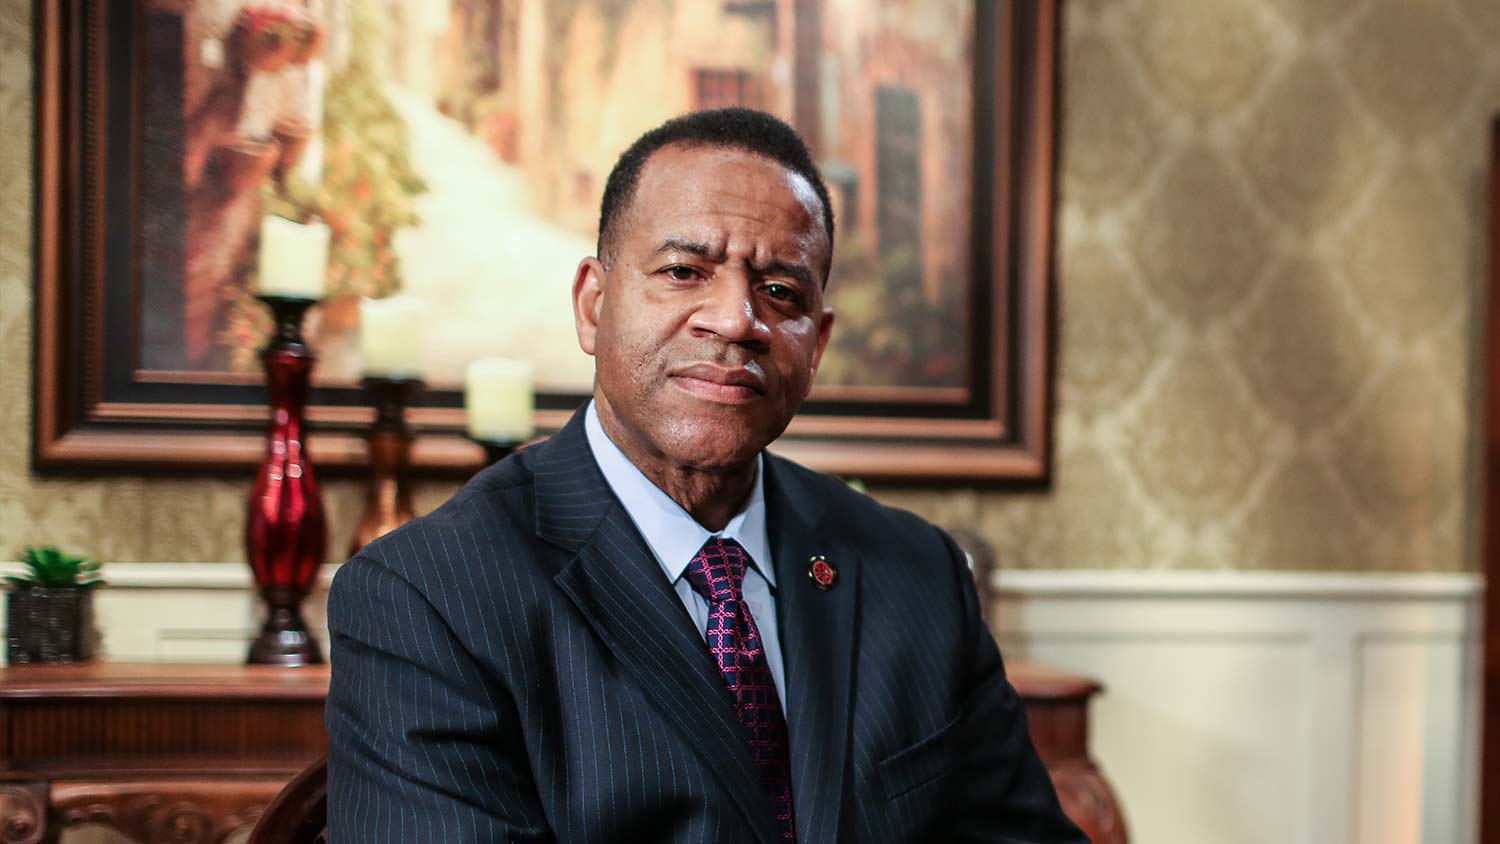 Chief Kelvin Cochran